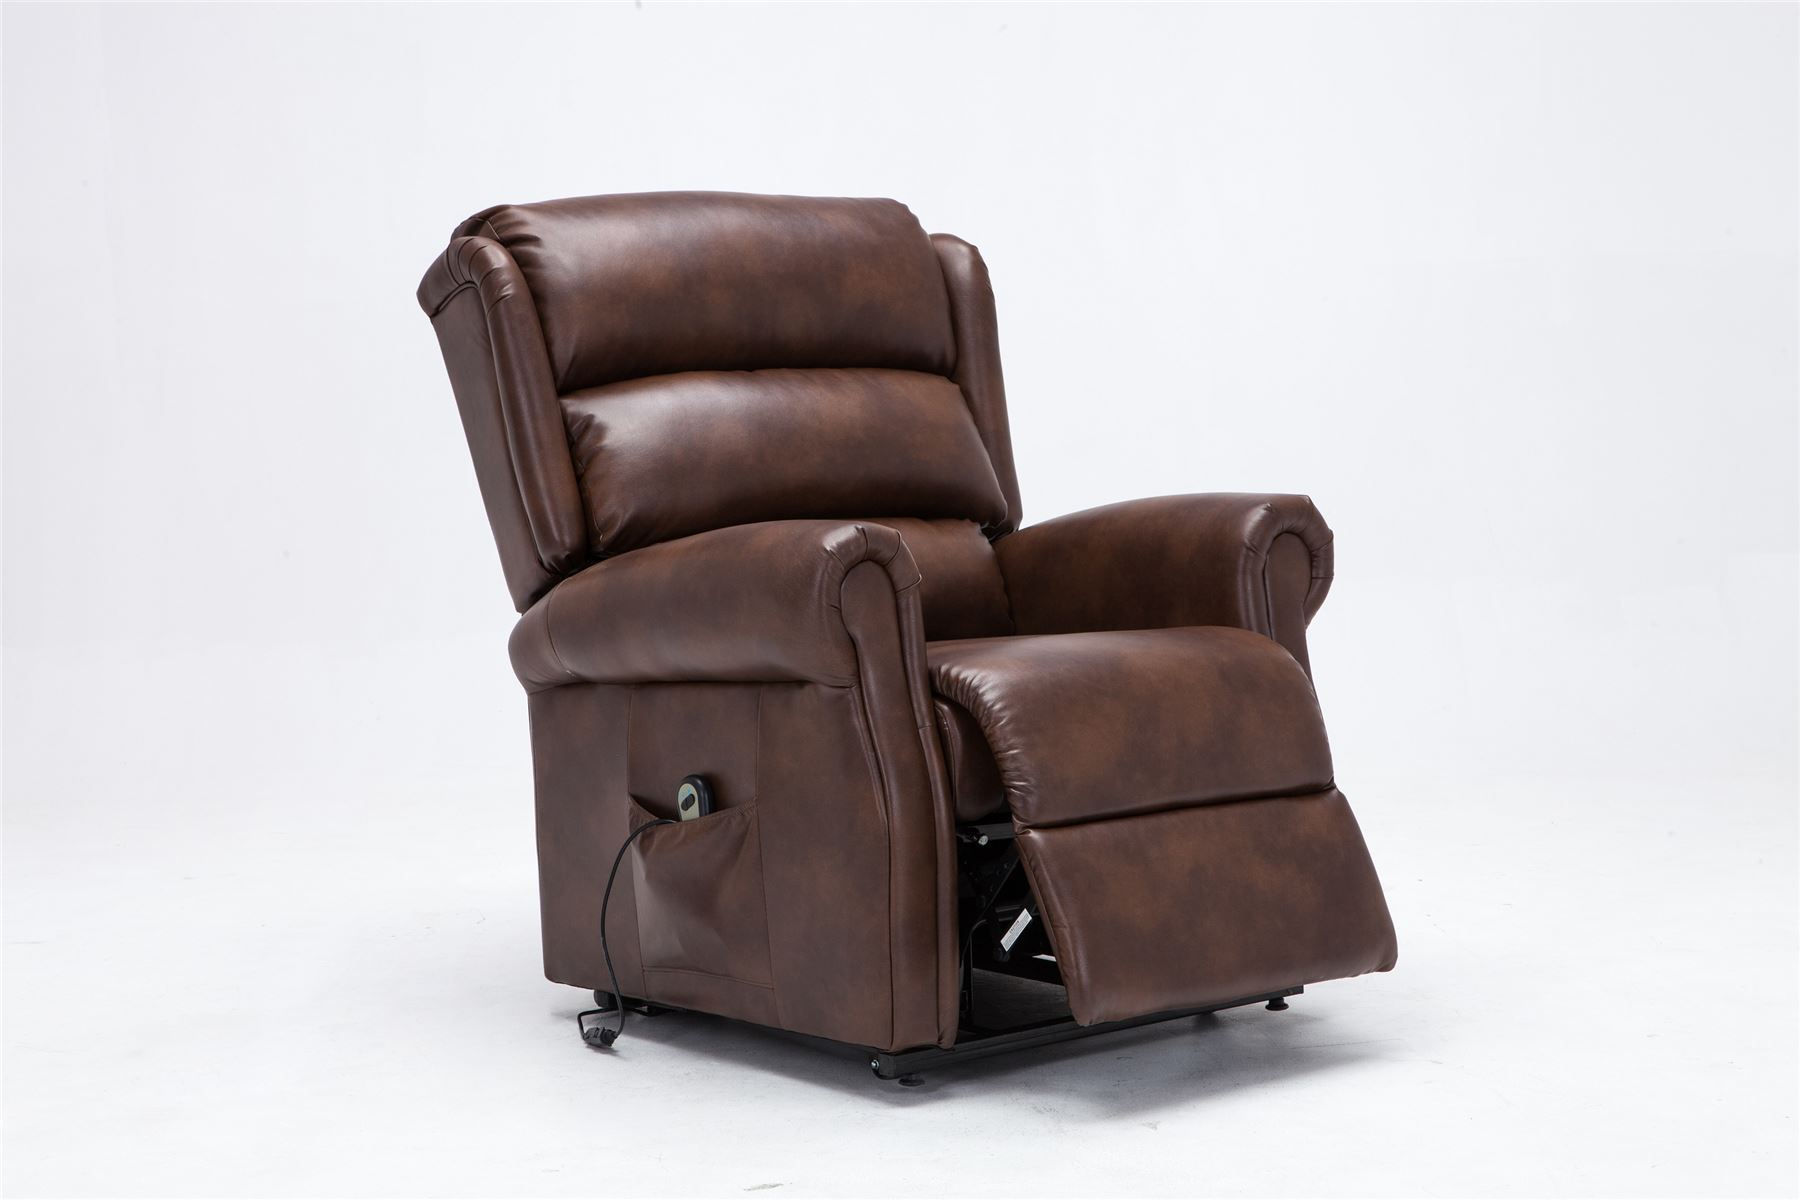 Birlea Manhattan Electric Recliner Rise & Reclining Arm Chair Brown Faux Leather